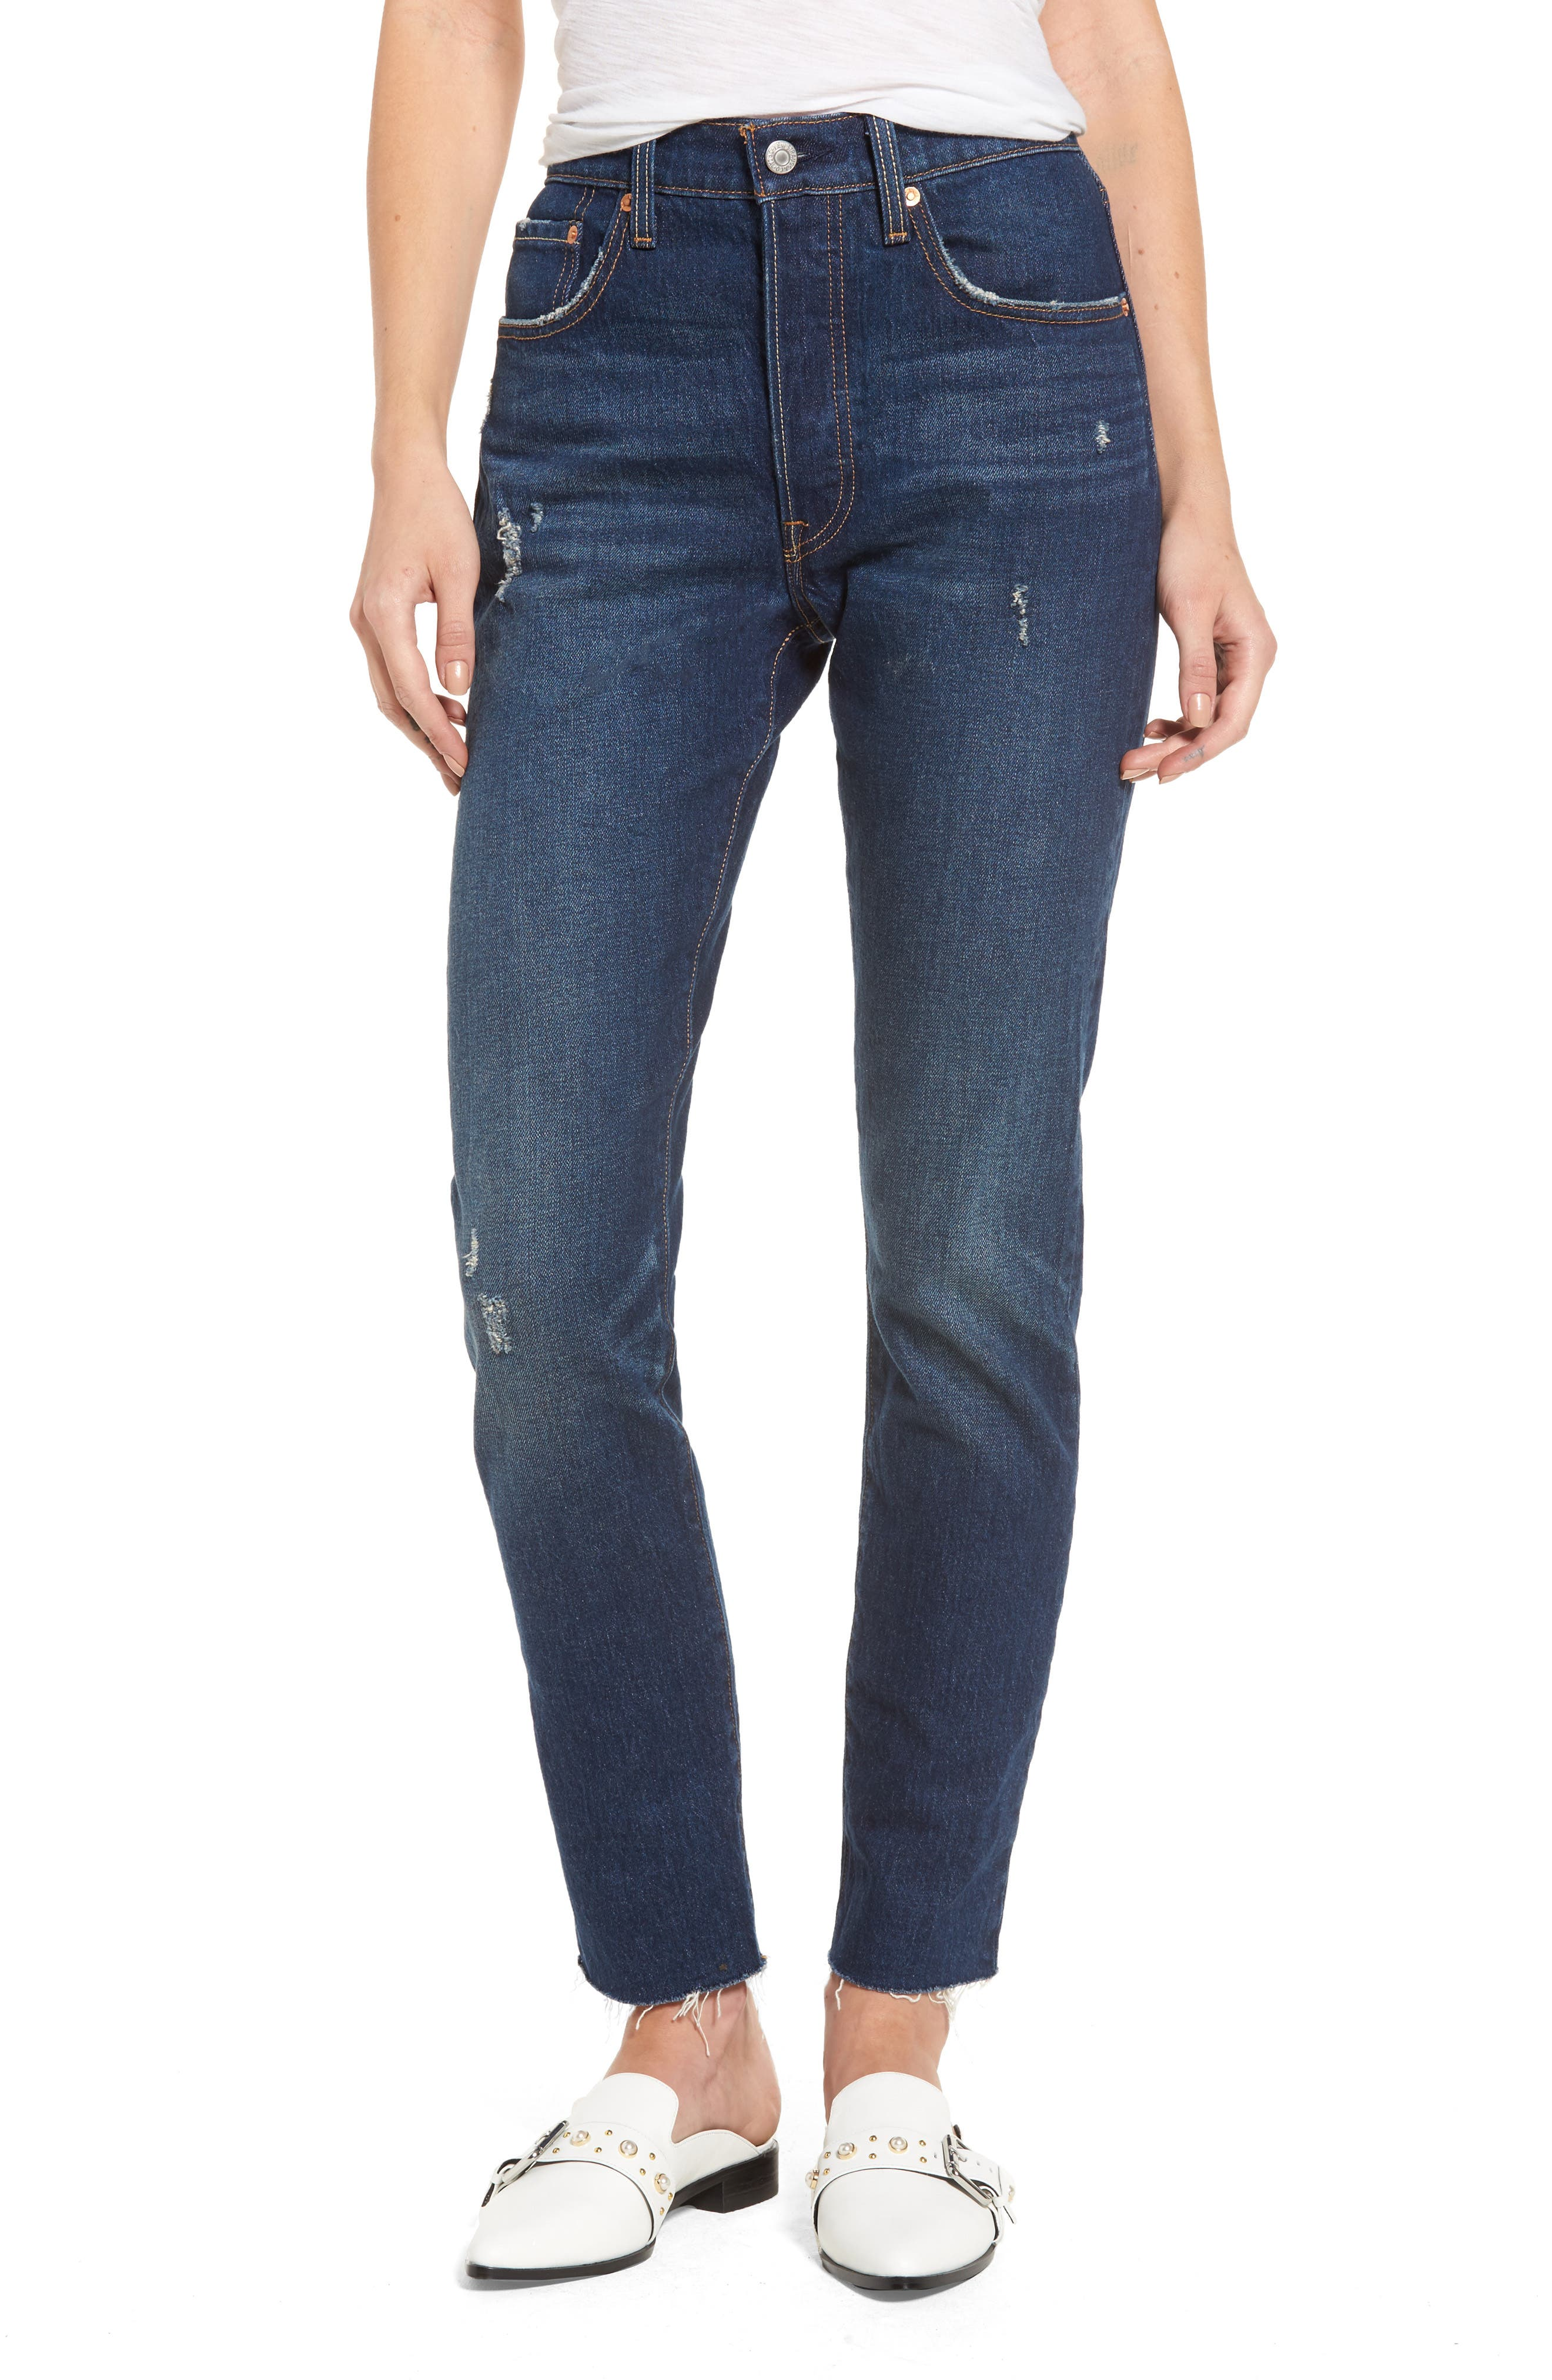 Levis<sup>®</sup> 501 Raw Hem Skinny Jeans,                             Main thumbnail 1, color,